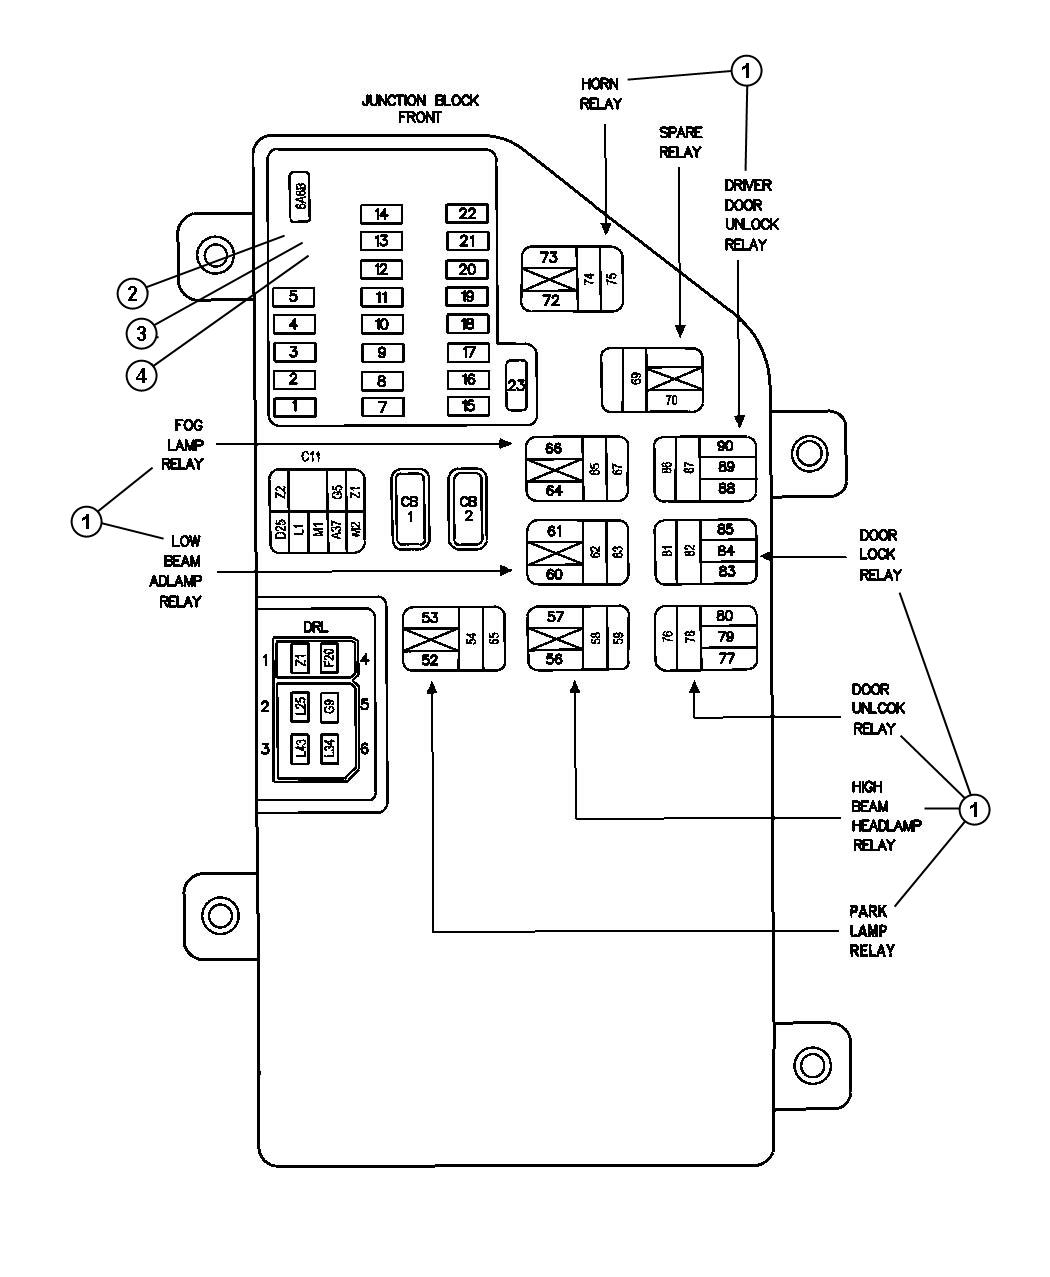 00i58804 Radio Wiring Diagram For A Chrysler Concorde on